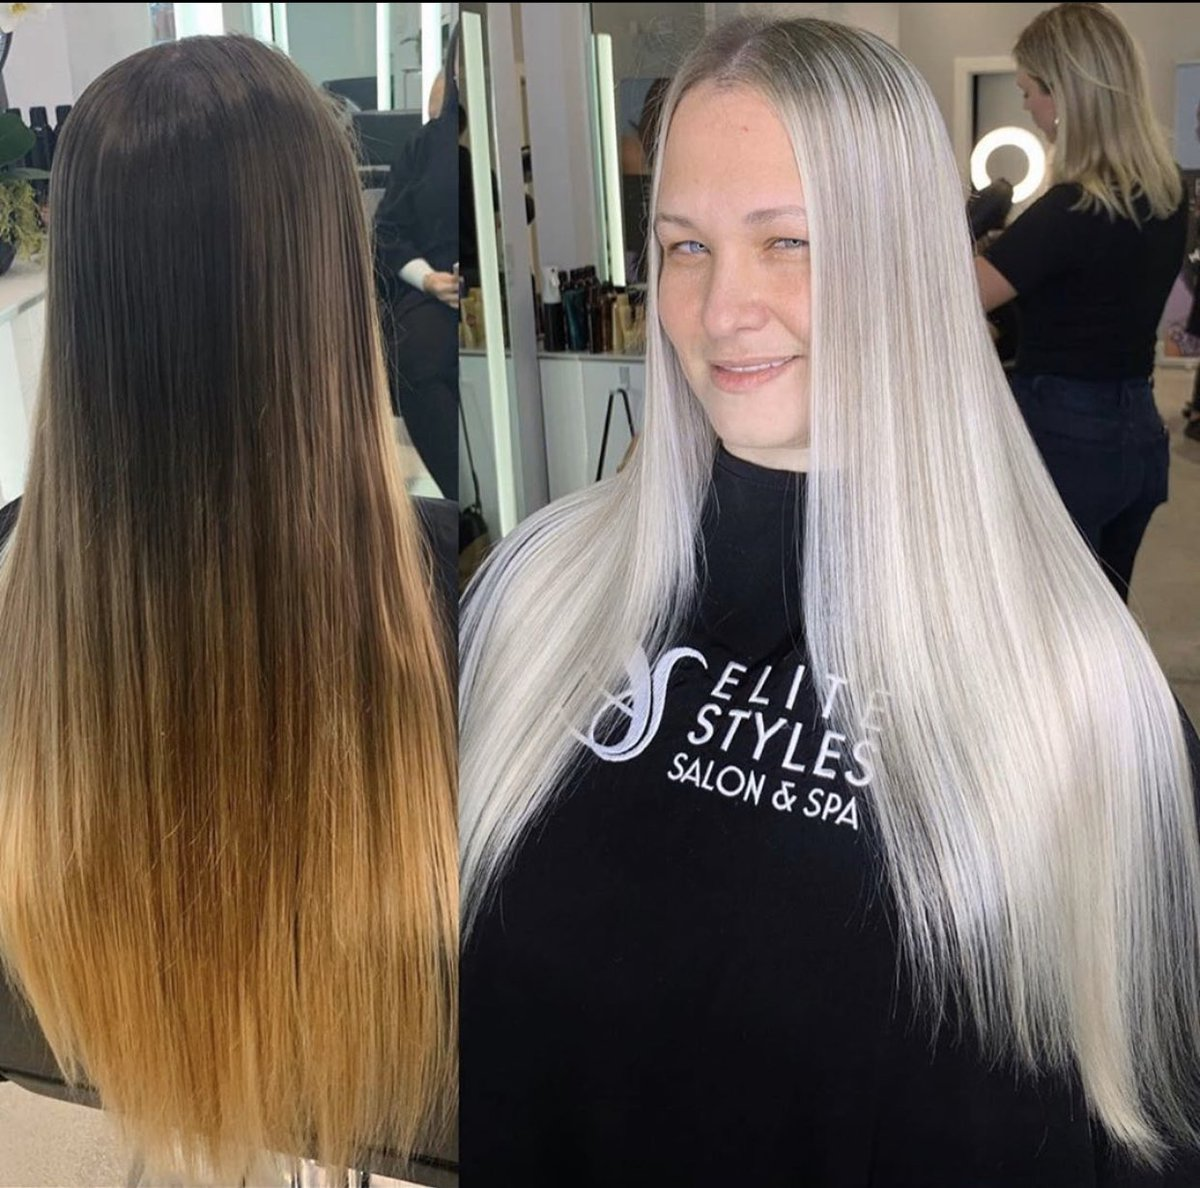 """""""After using the best products combined with the best bond builder @olaplex, I was able to give her what she desired, a beautiful and healthy Icy Platinum Blonde, without compromising her hair integrity."""" Stylist : @betos_hair  #olaplex #platinumhair pic.twitter.com/A13qOiSYgF"""